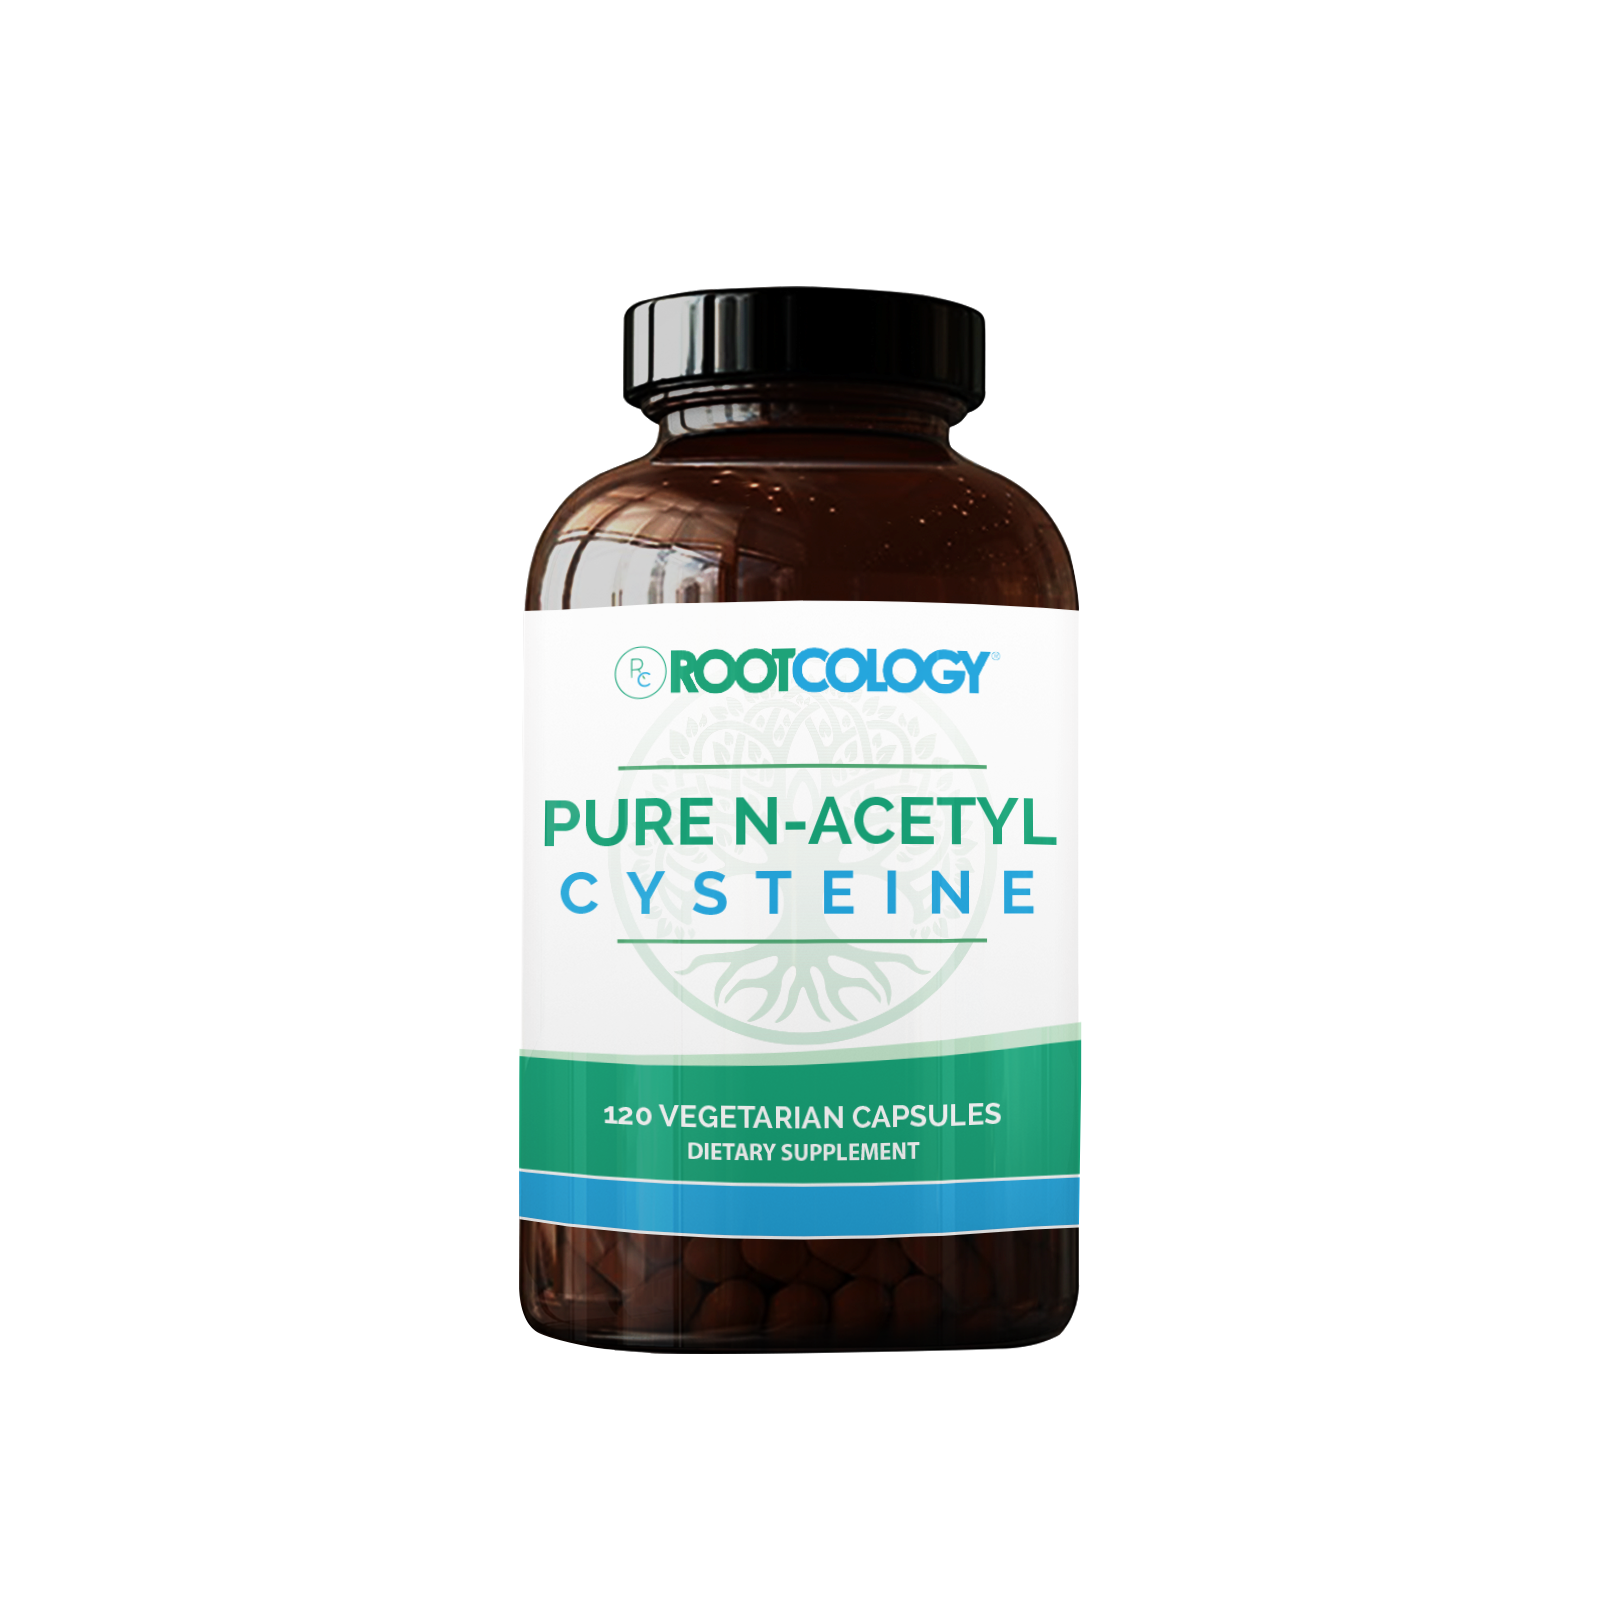 Pure N-Acetyl Cysteine - 1 Bottle